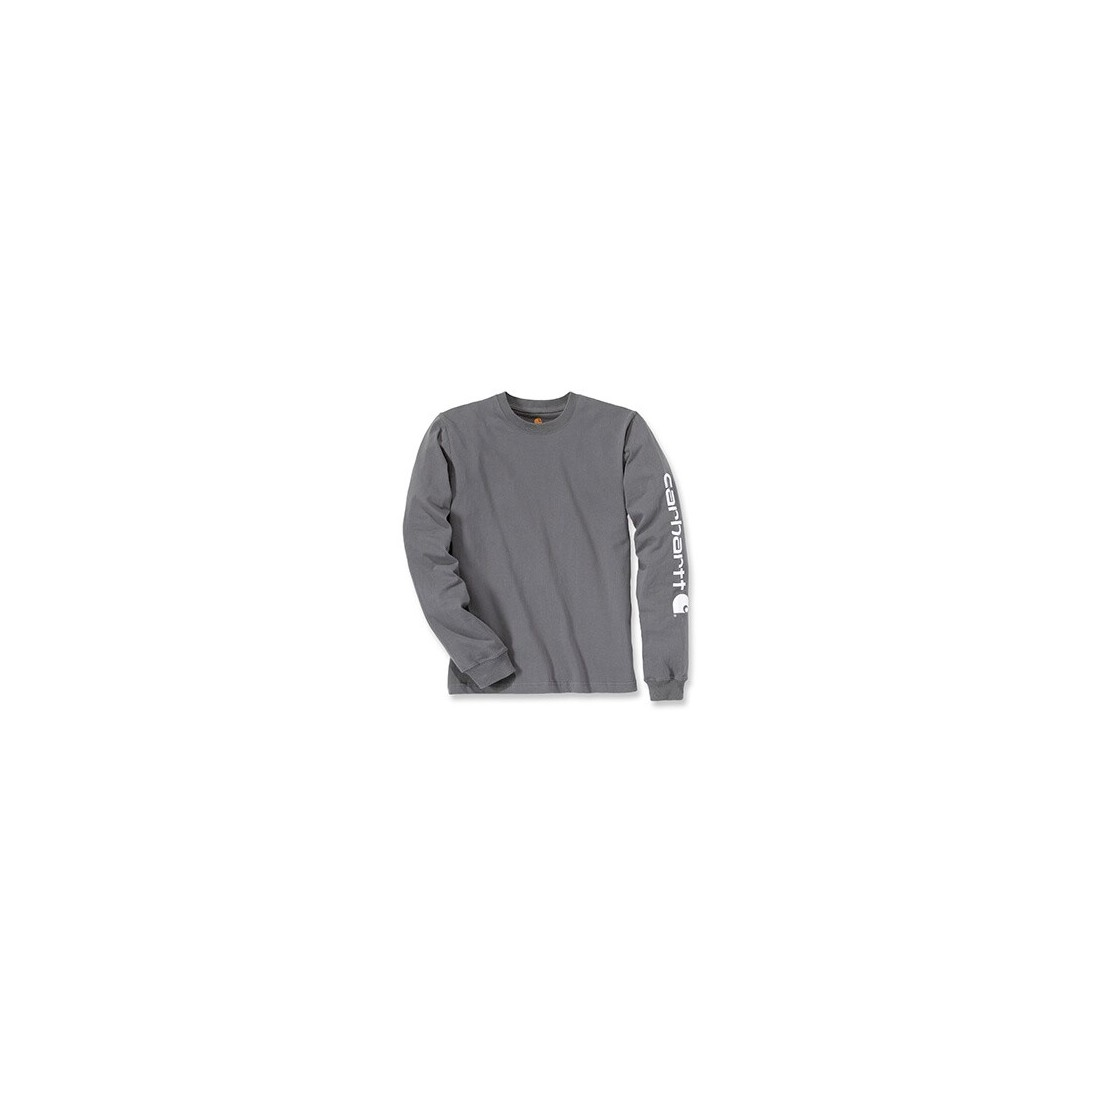 Camiseta logo long sleeve Carhartt